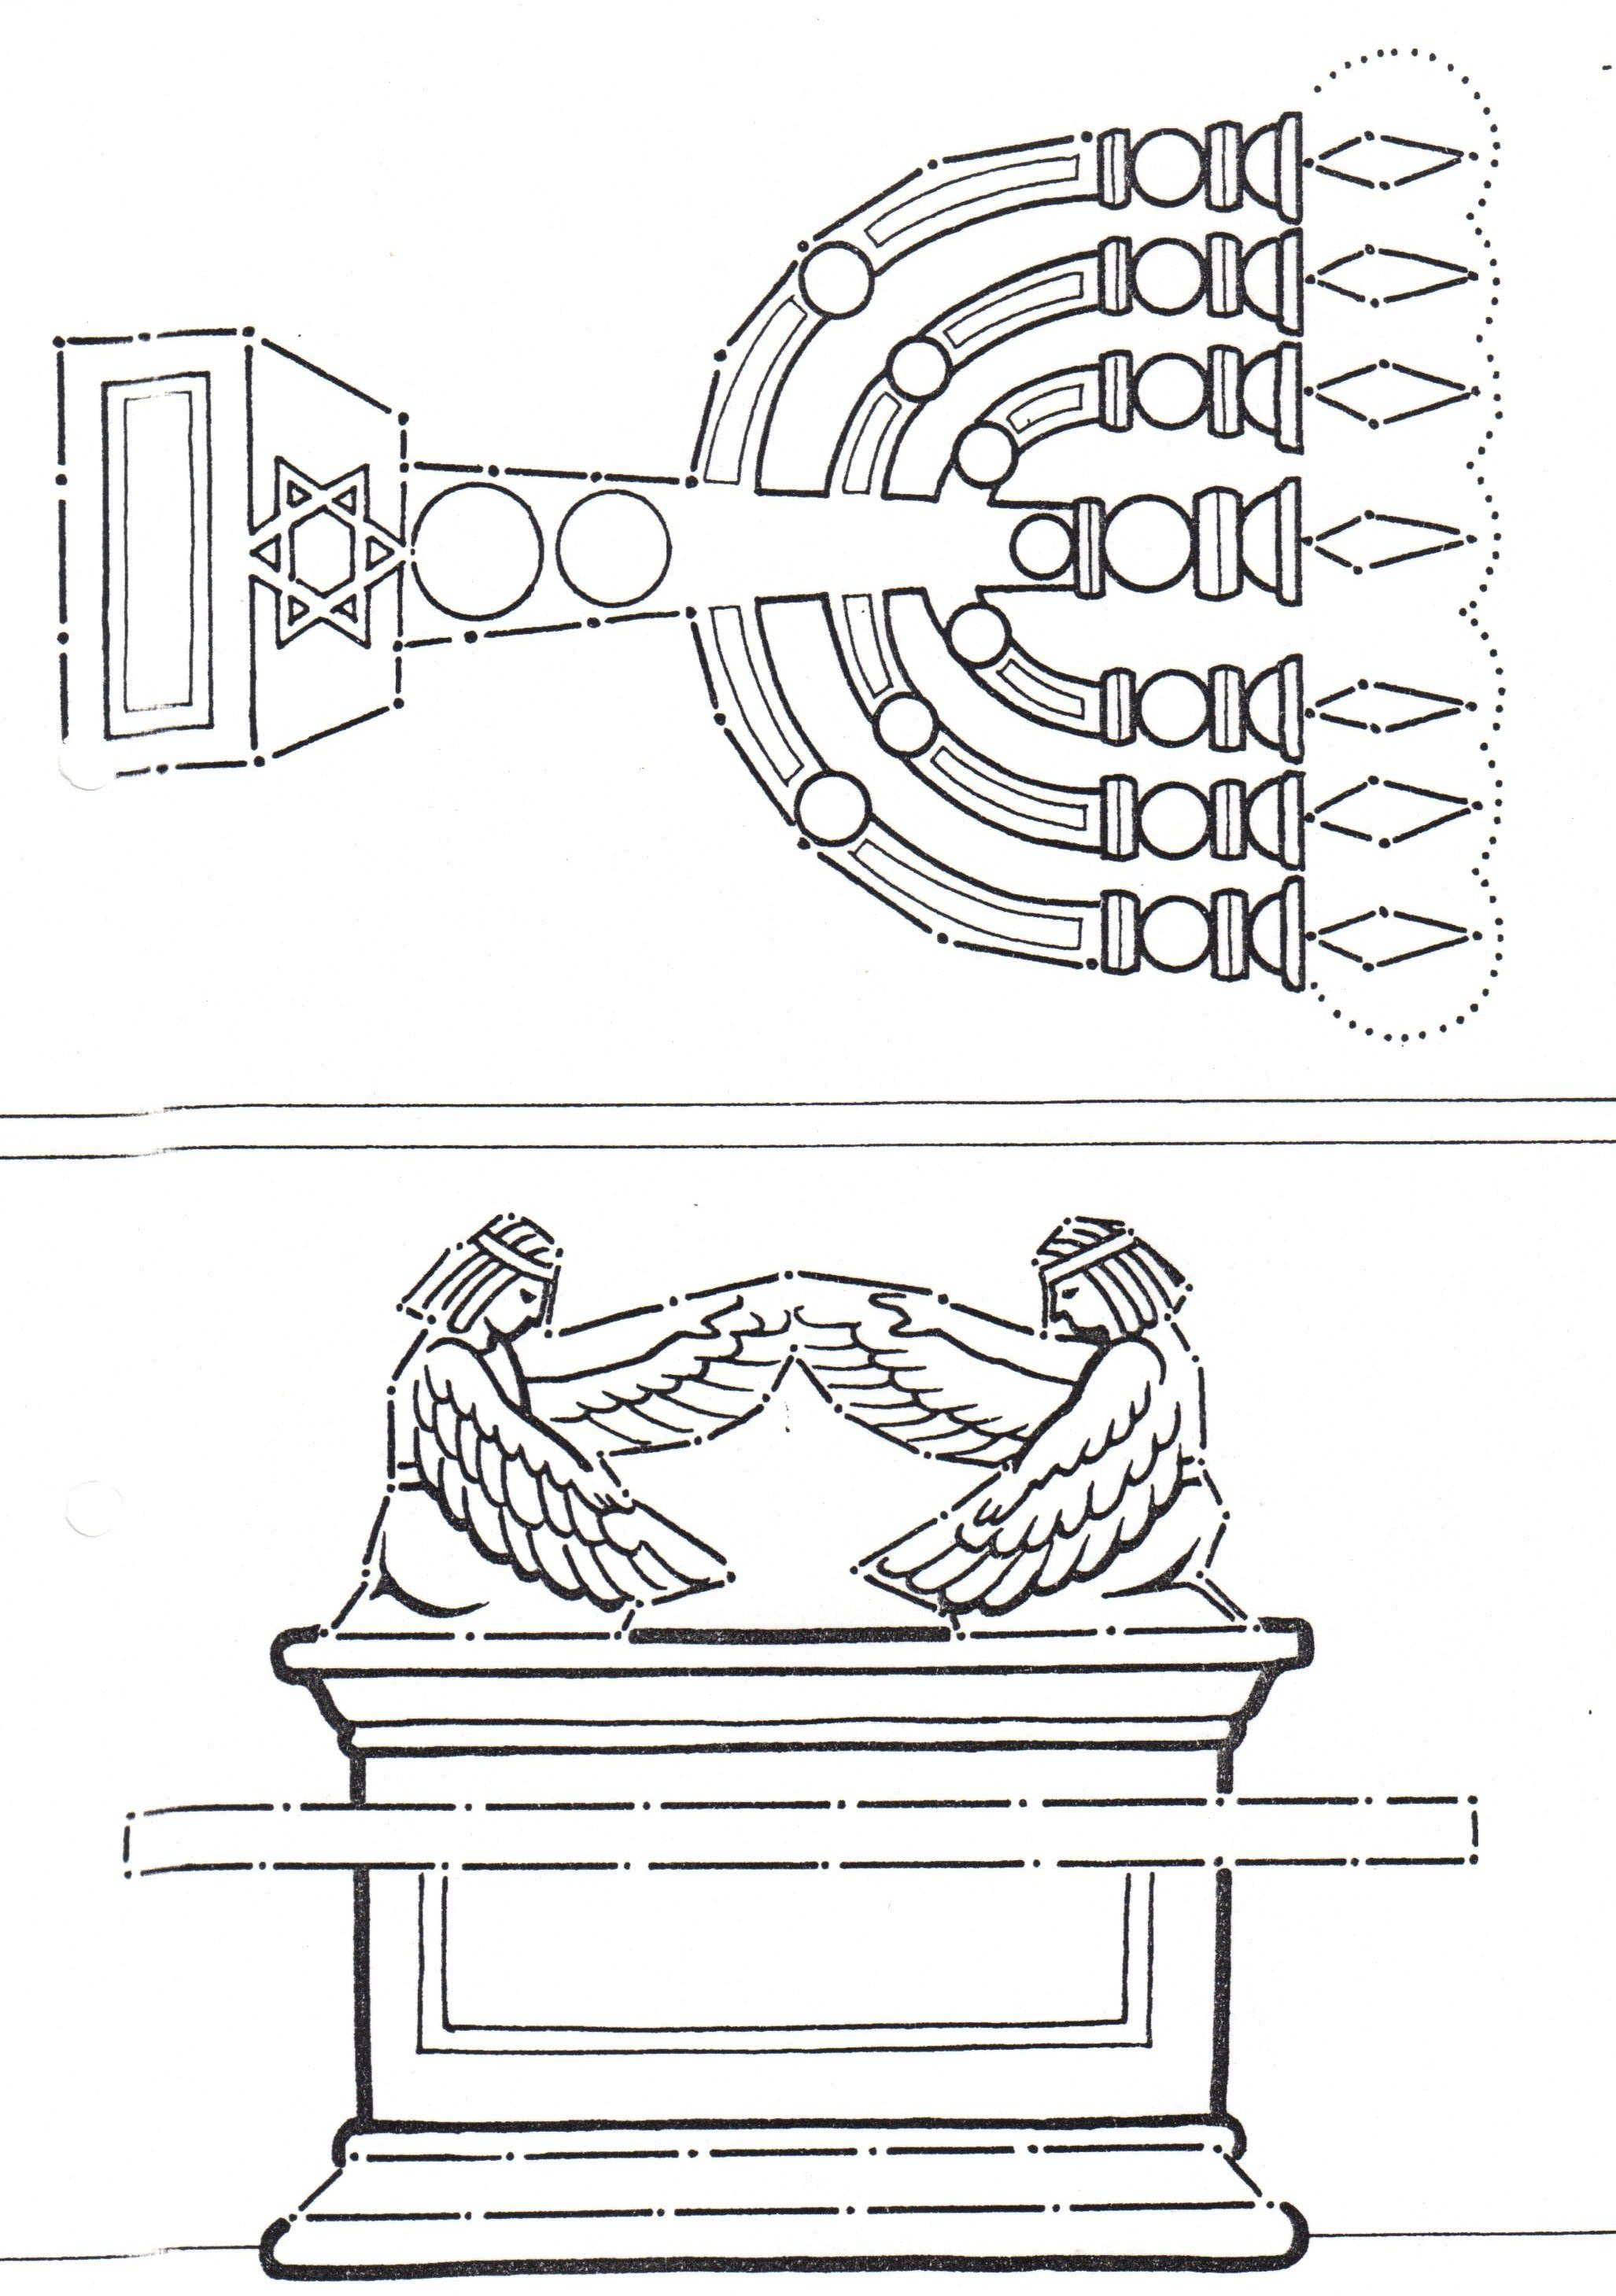 Coloring Pages Ark Of The Covenant And Lampstand From Tabernacle - Free Printable Pictures Of The Tabernacle